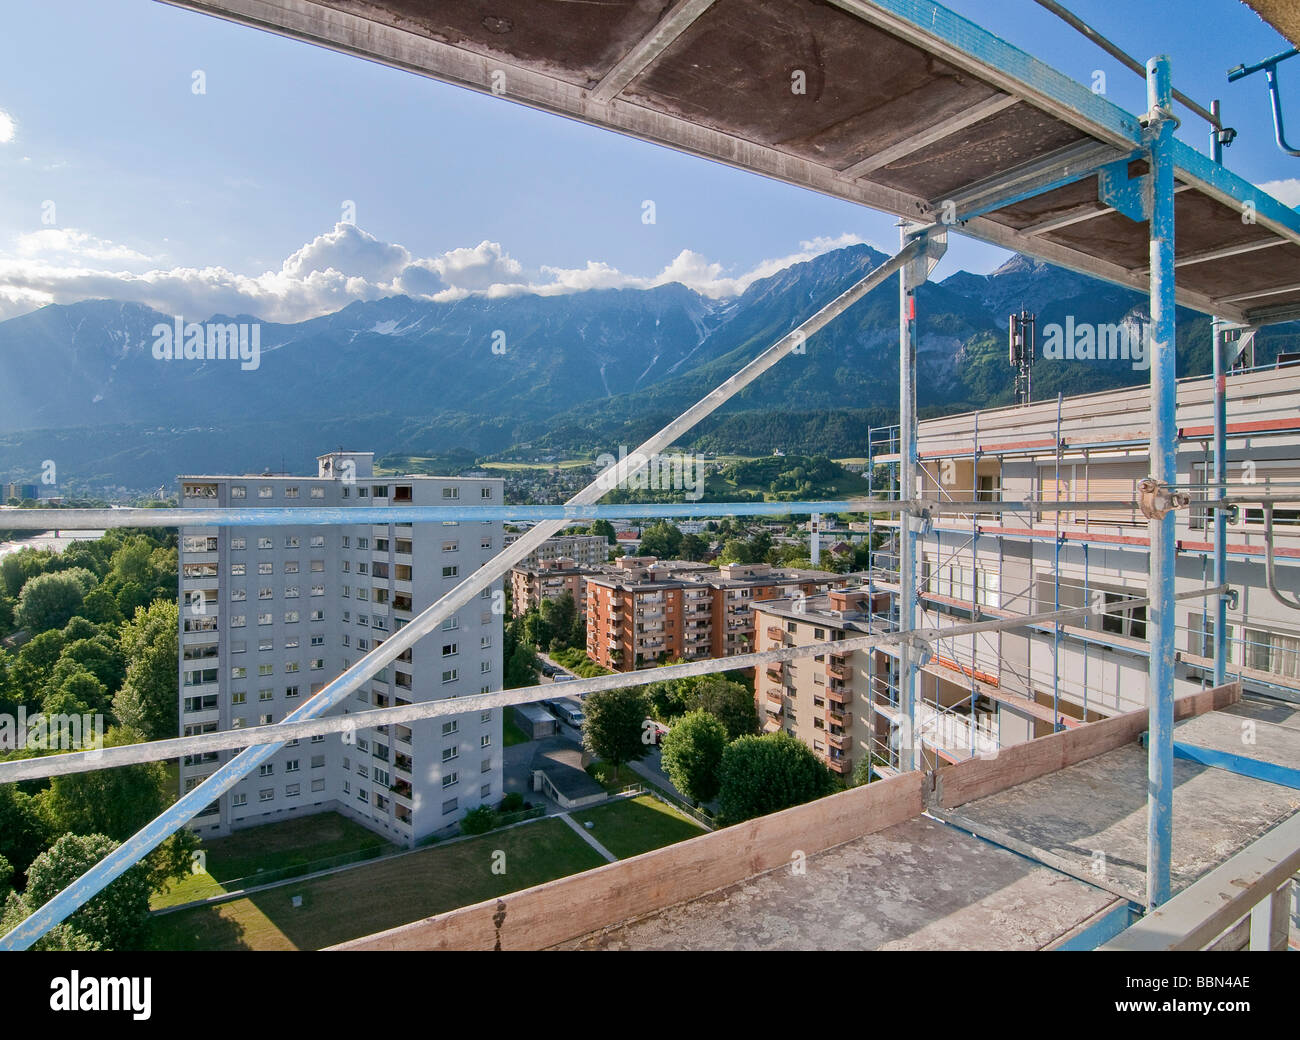 Scaffolding, fixation rod, scaffolding on a building, high-rise building, Olympic village, Innsbruck, Austria, Europe - Stock Image